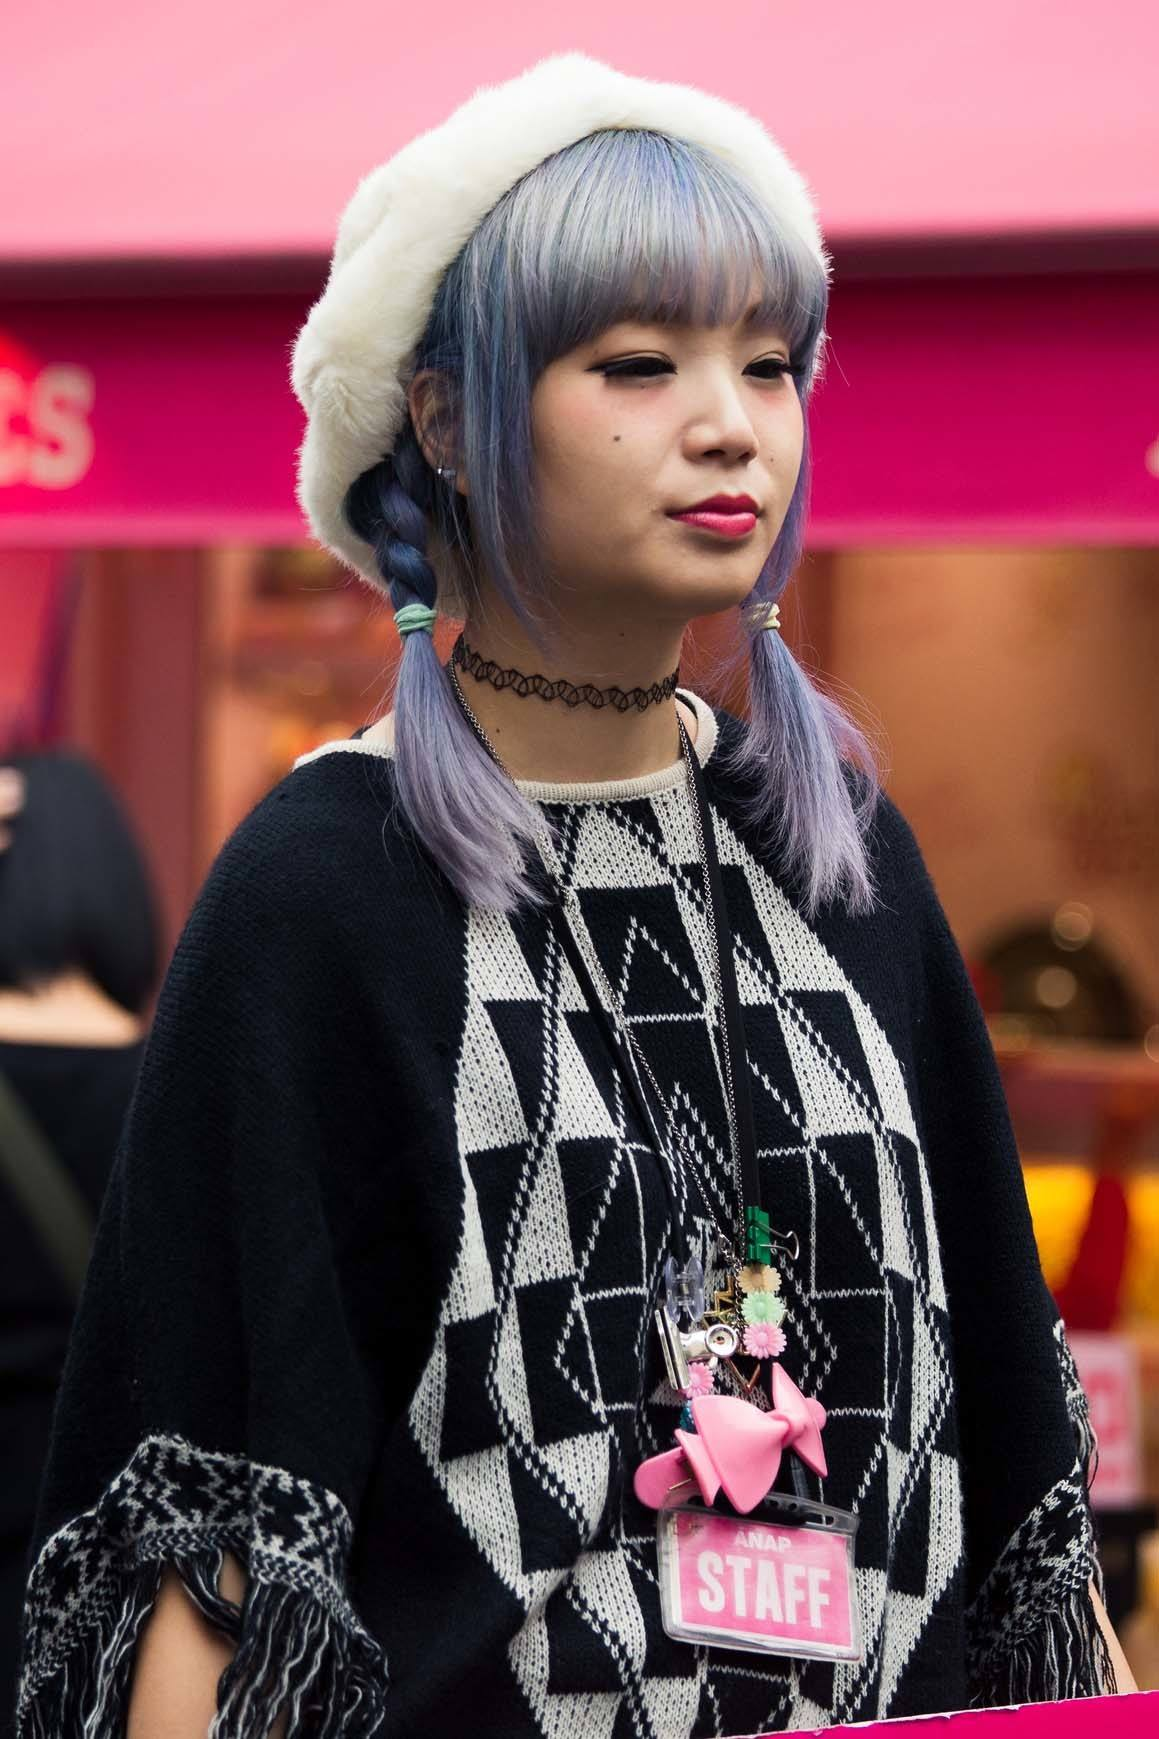 pastel hair colors: Girl with lavender hair in two braids wearing a bonnet and black sweater